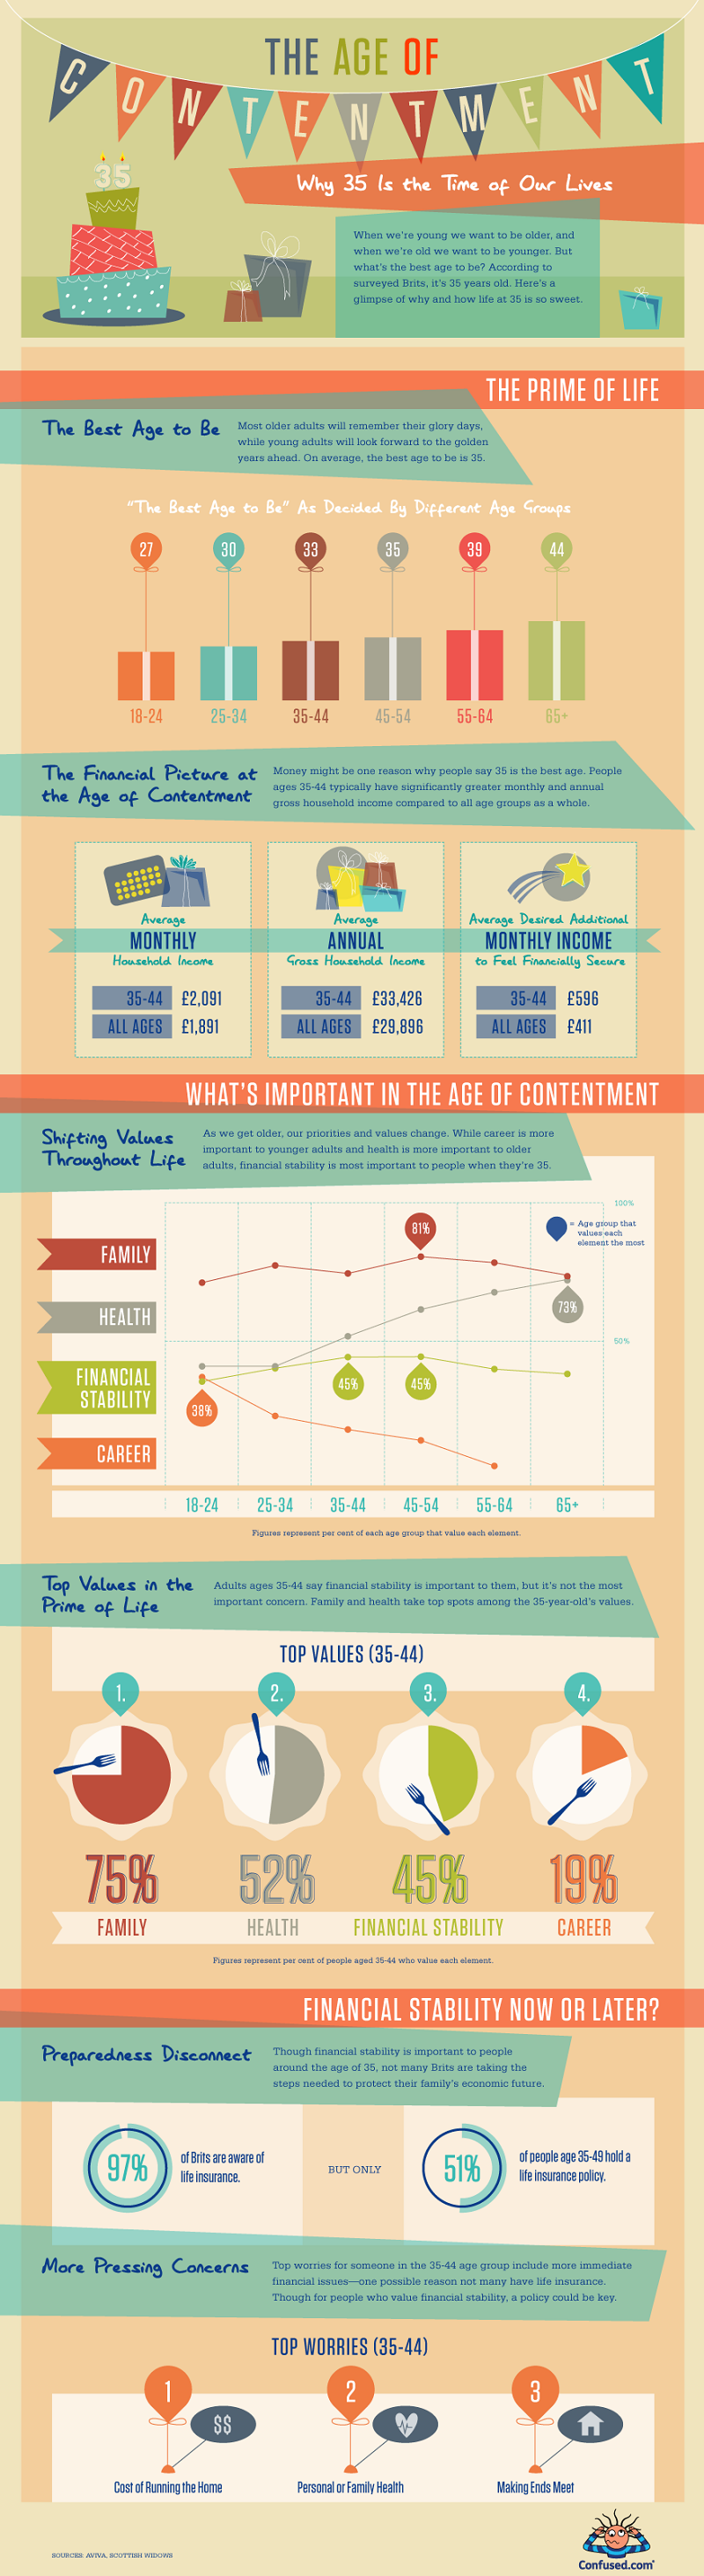 The Age of Contentment